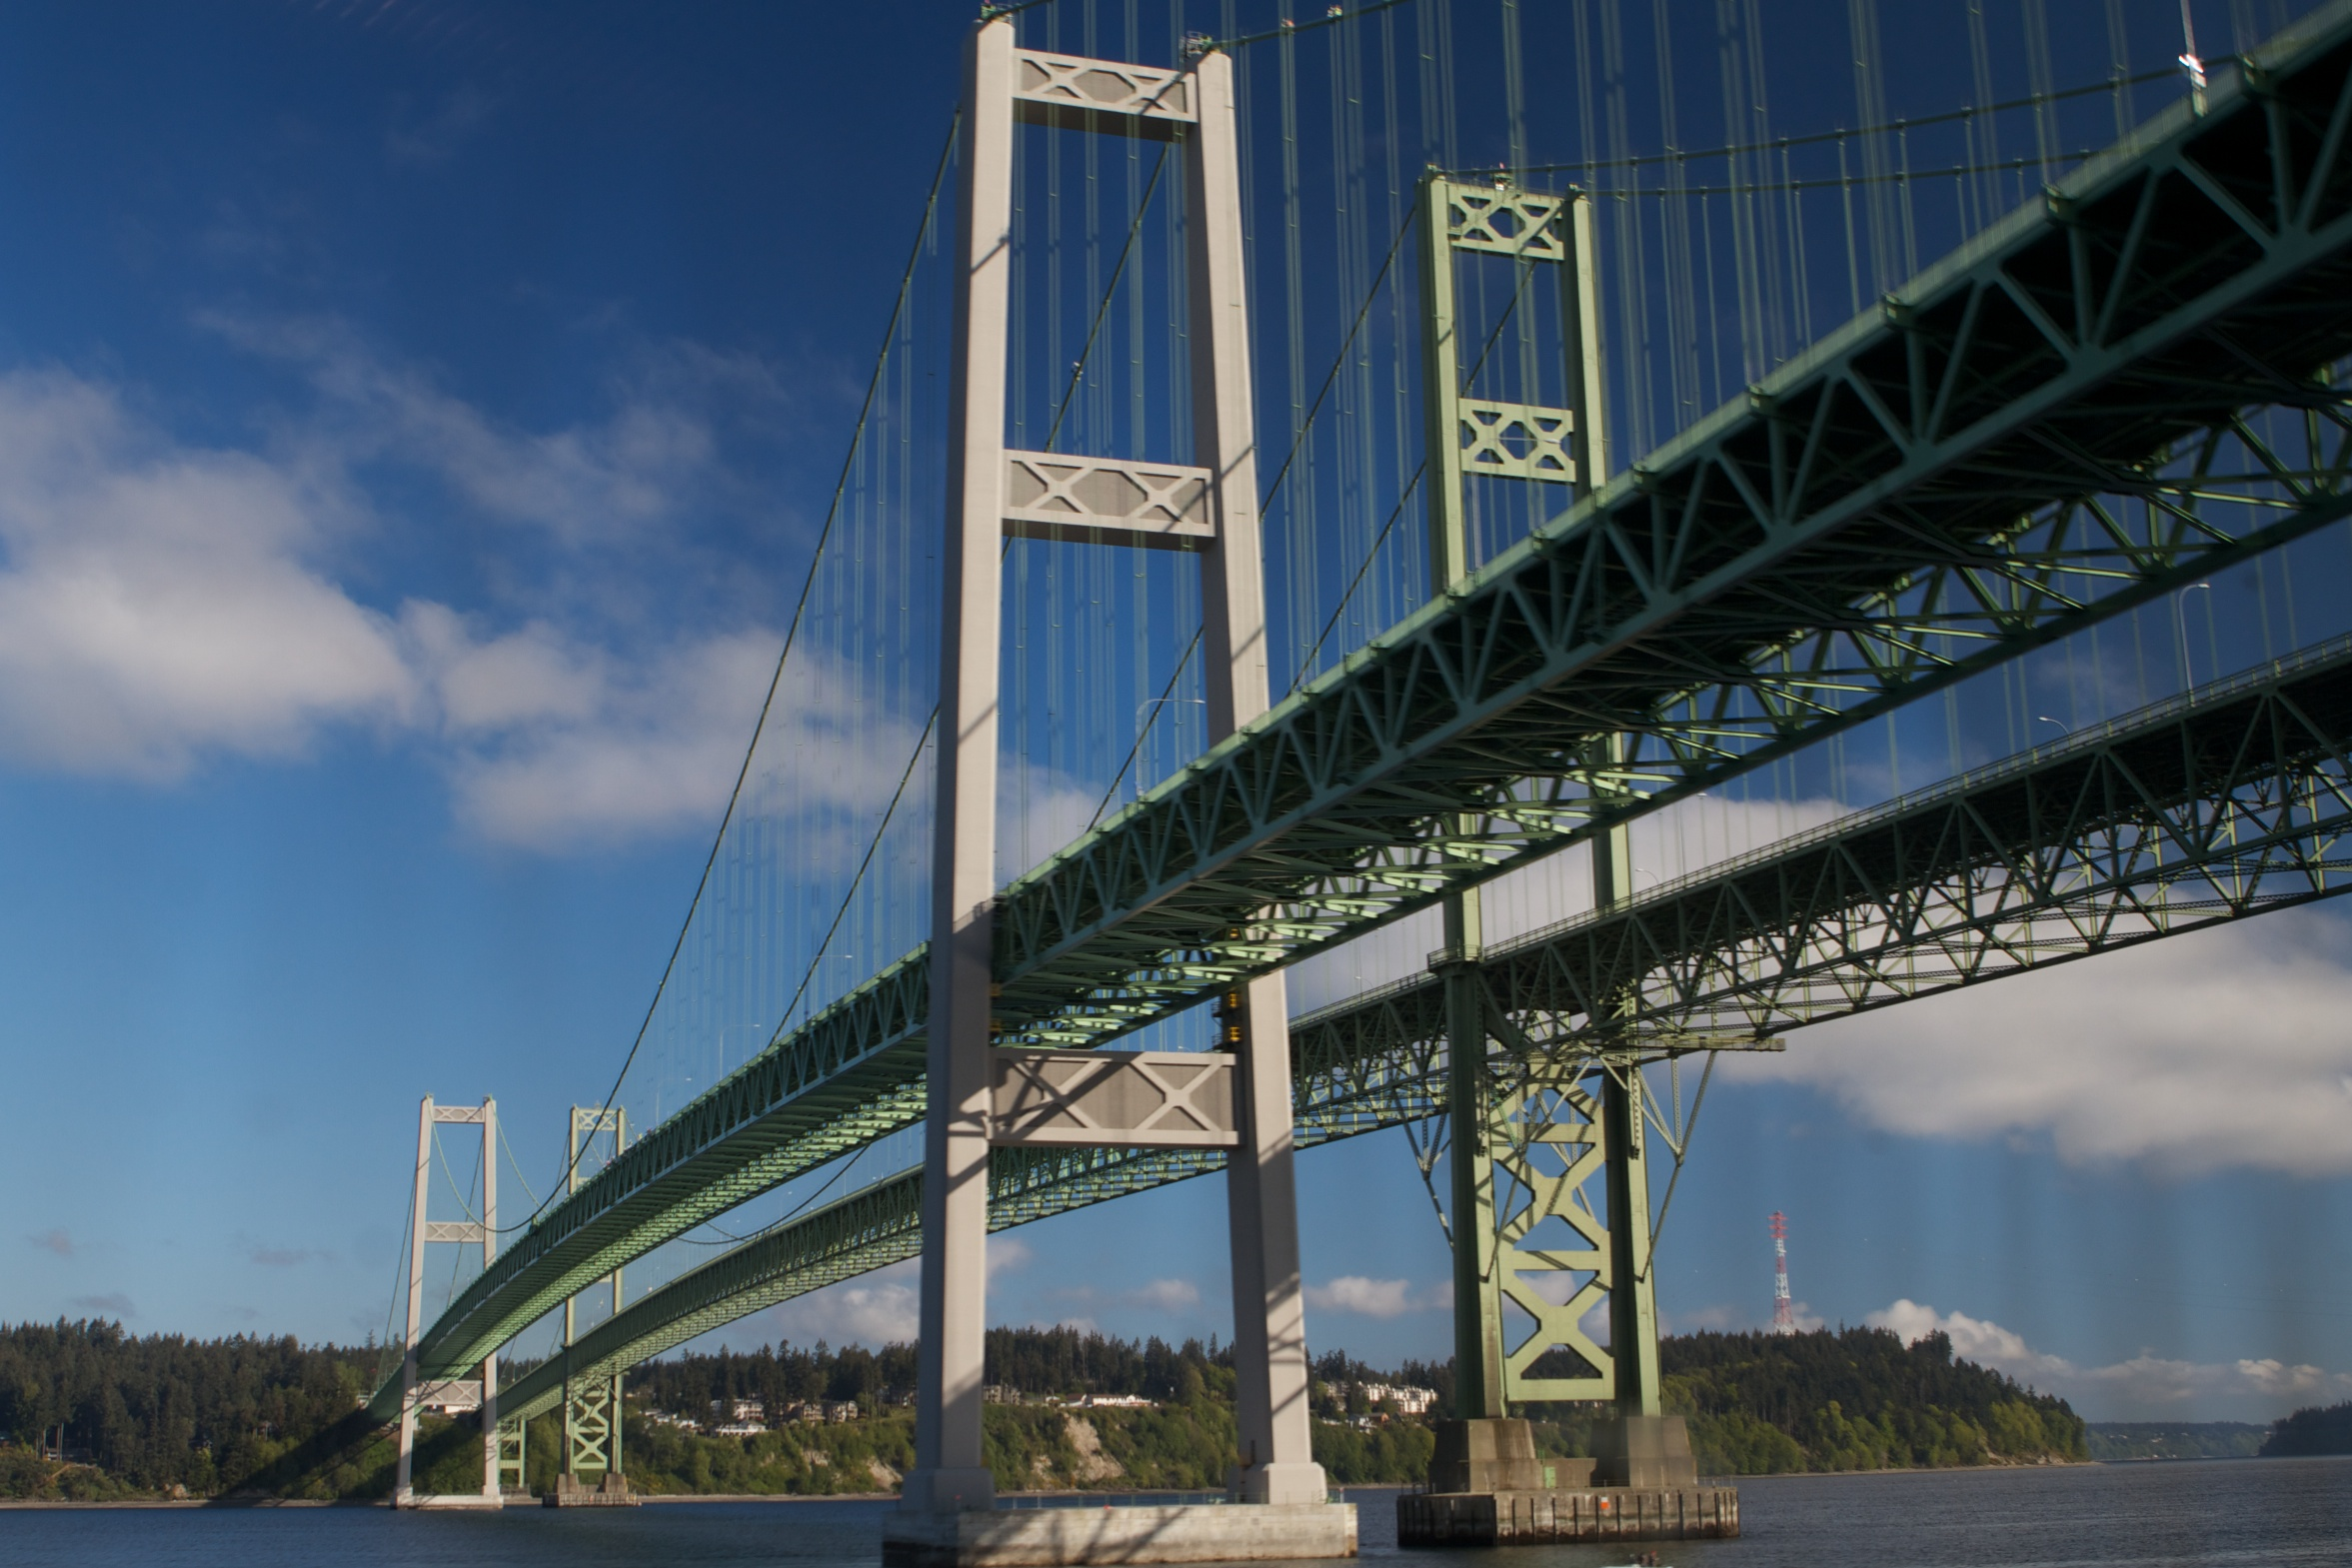 Tacoma_Narrows_Bridge(s)